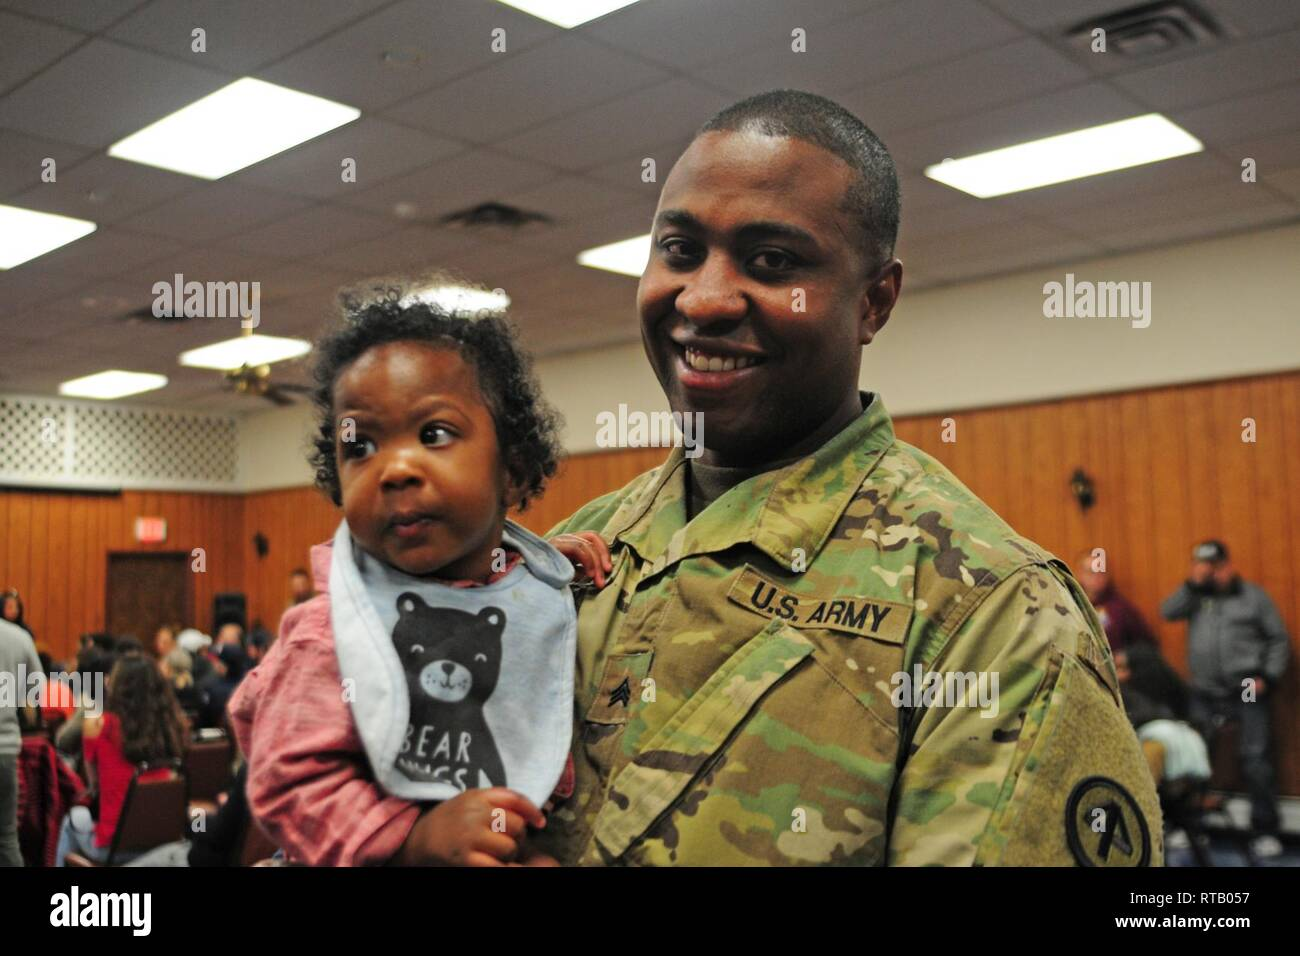 Sgt. Shavon A. Whyte poses with his son at the 250th Brigade Support Battalion's farewell ceremony. Soldiers from Hotel Company, 250th BSB, said farewell to family, friends and New Jersey National Guard leadership at a farewell ceremony Feb. 5, 2019 at the Veterans of Foreign Wars Post 5084 in Elmwood Park, New Jersey. The Teaneck-based Soldiers will deploy to the Horn of Africa in support of Operation Enduring Freedom. - Stock Image